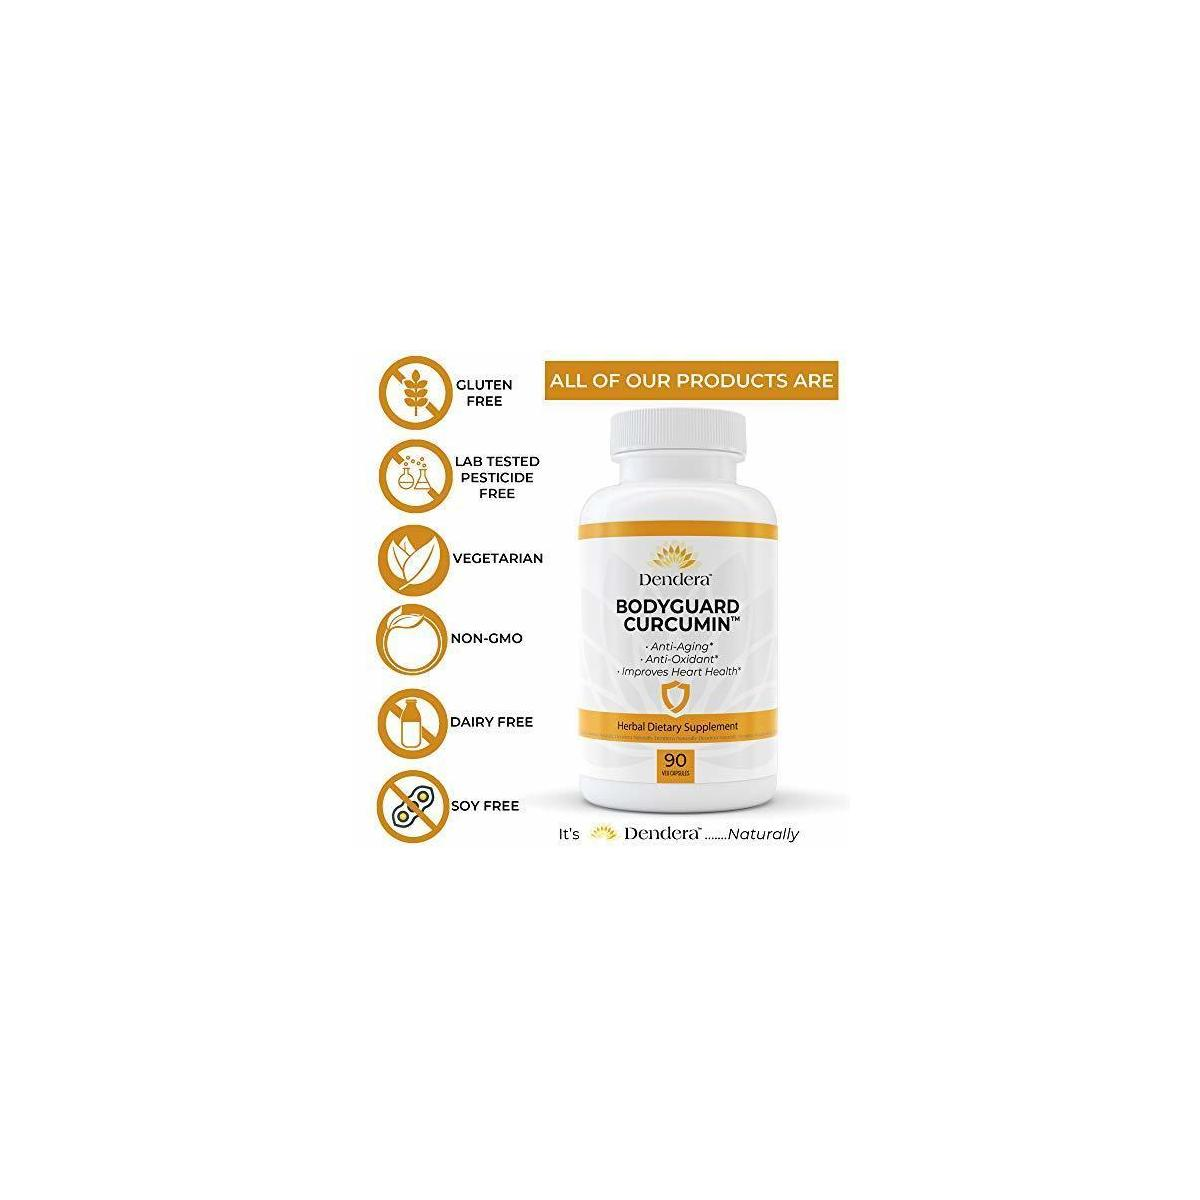 Bodyguard Curcumin with Black Pepper by Dendera Naturally- 95% Curcuminoids - Herbal Supplement for Pain Relief, Inflammation, Joint Support - Stearate-Free - 90 Capsules